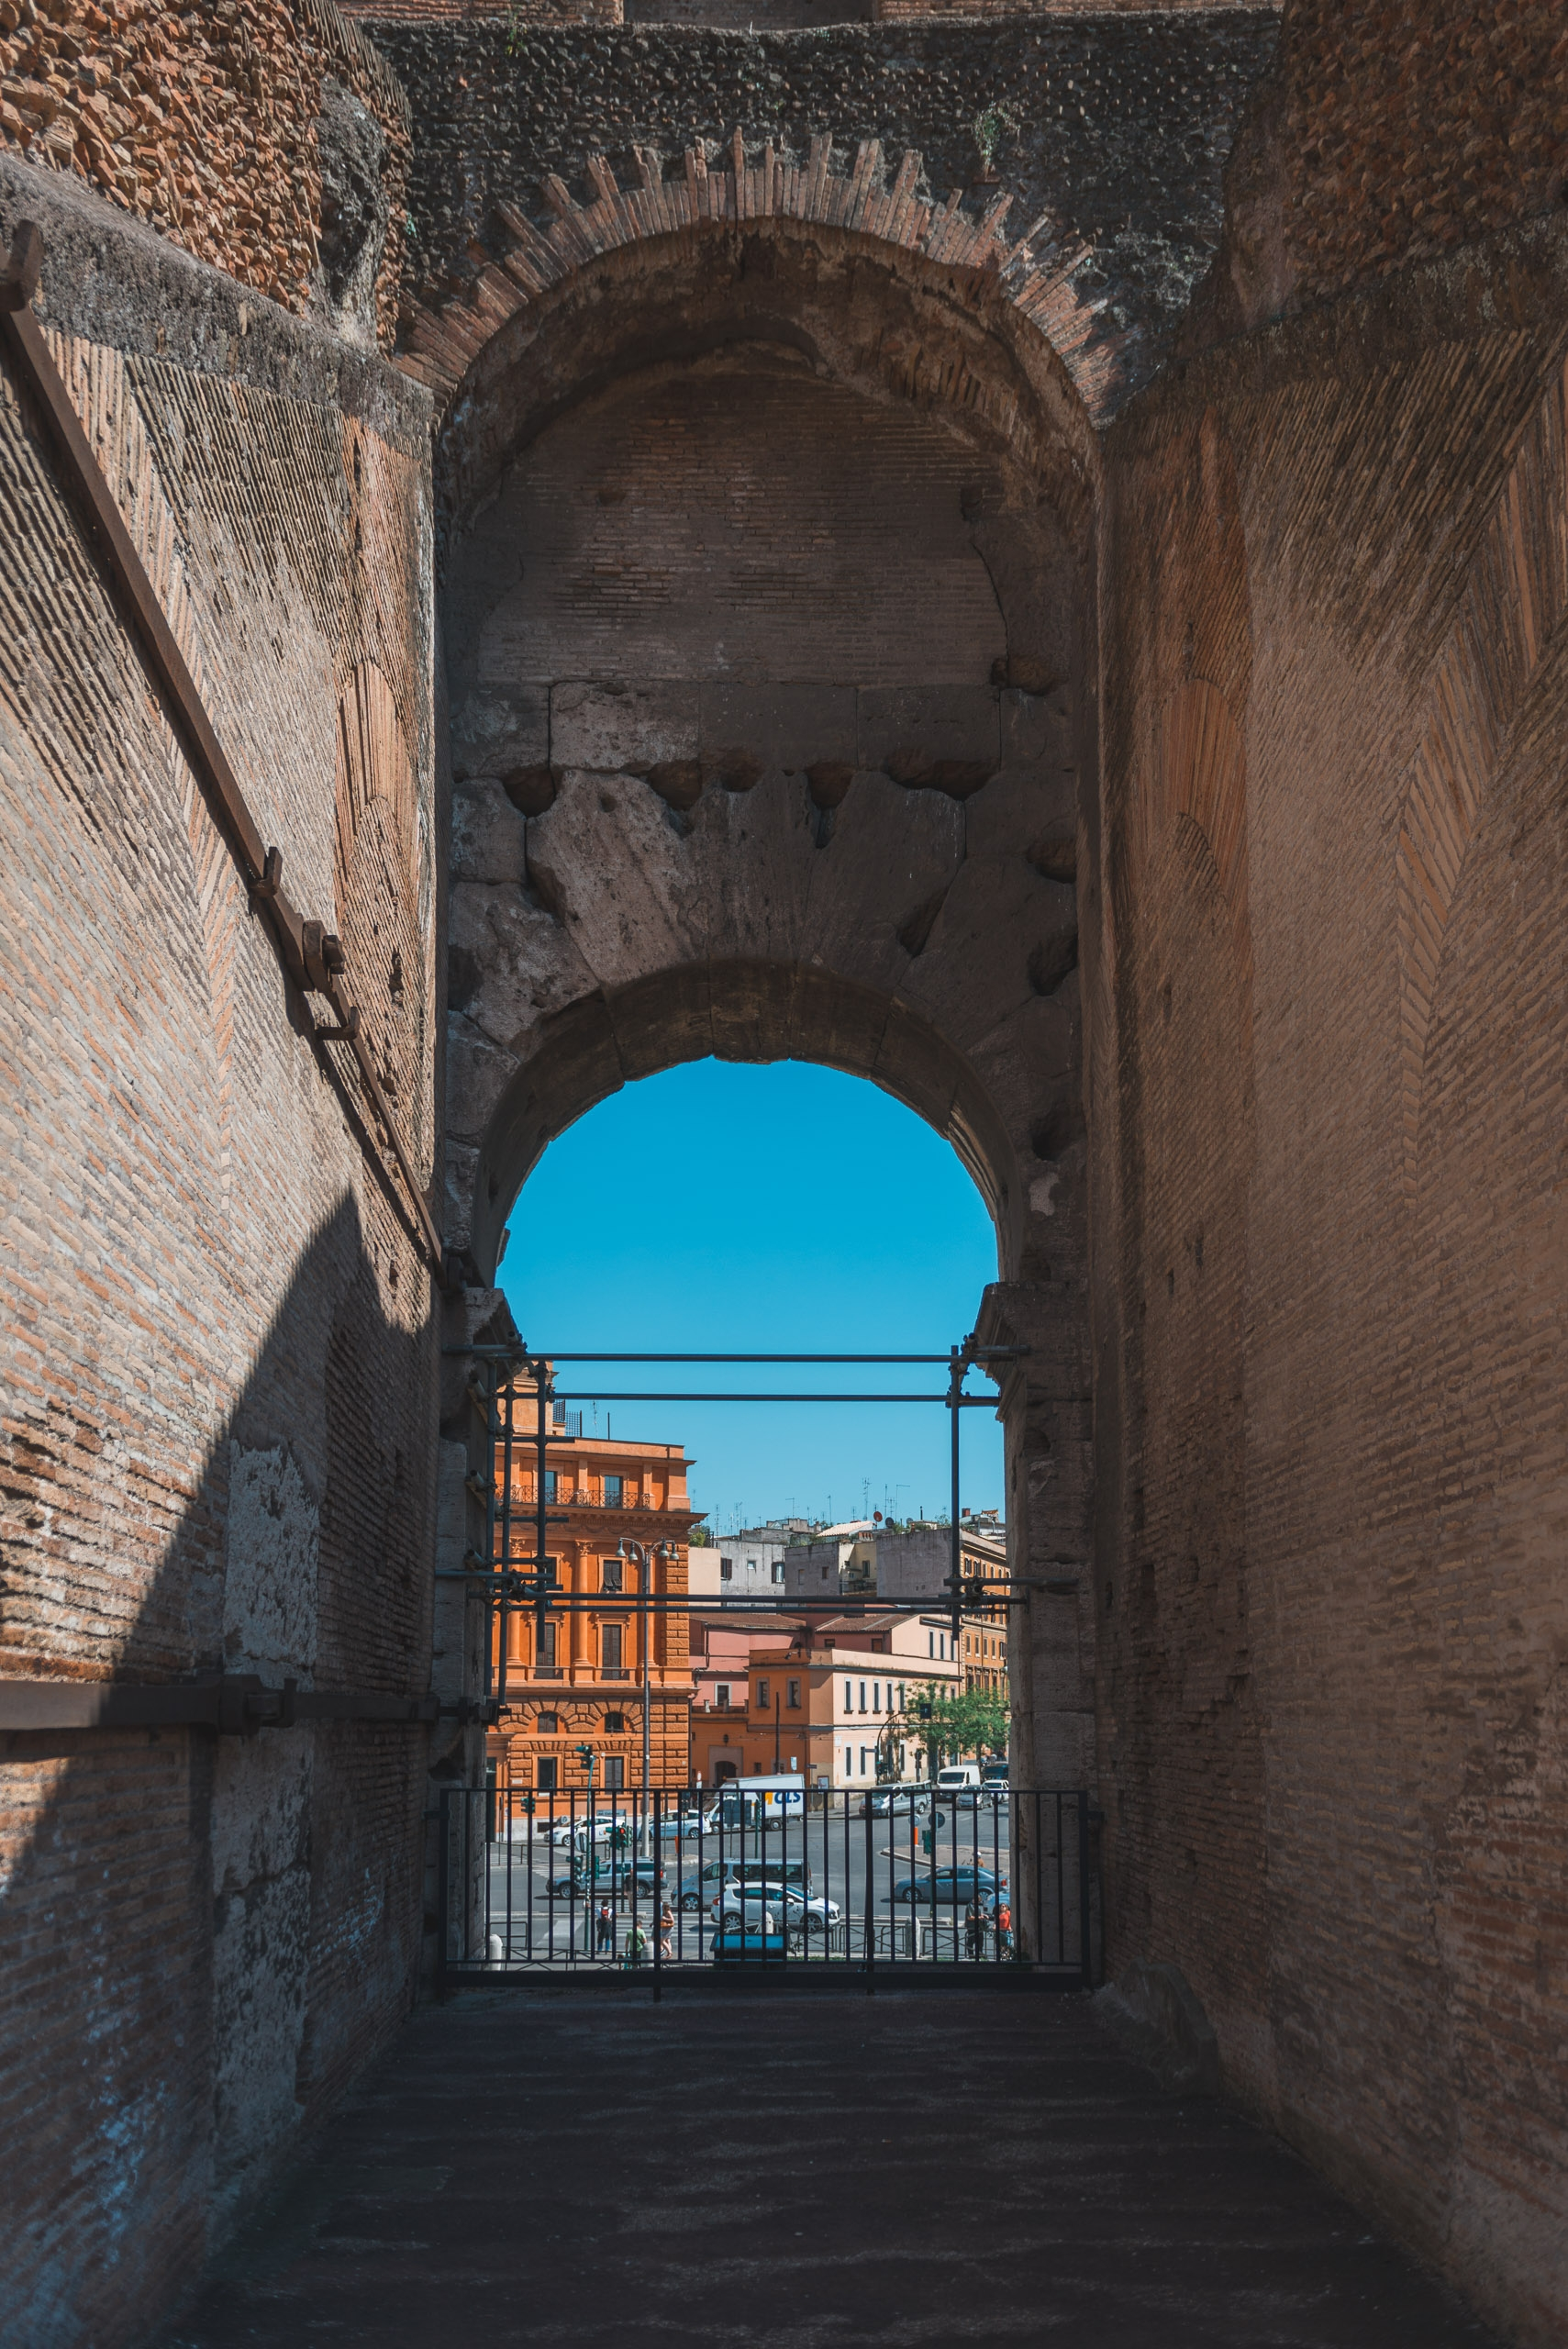 An Ancient Entrance to the Colosseum